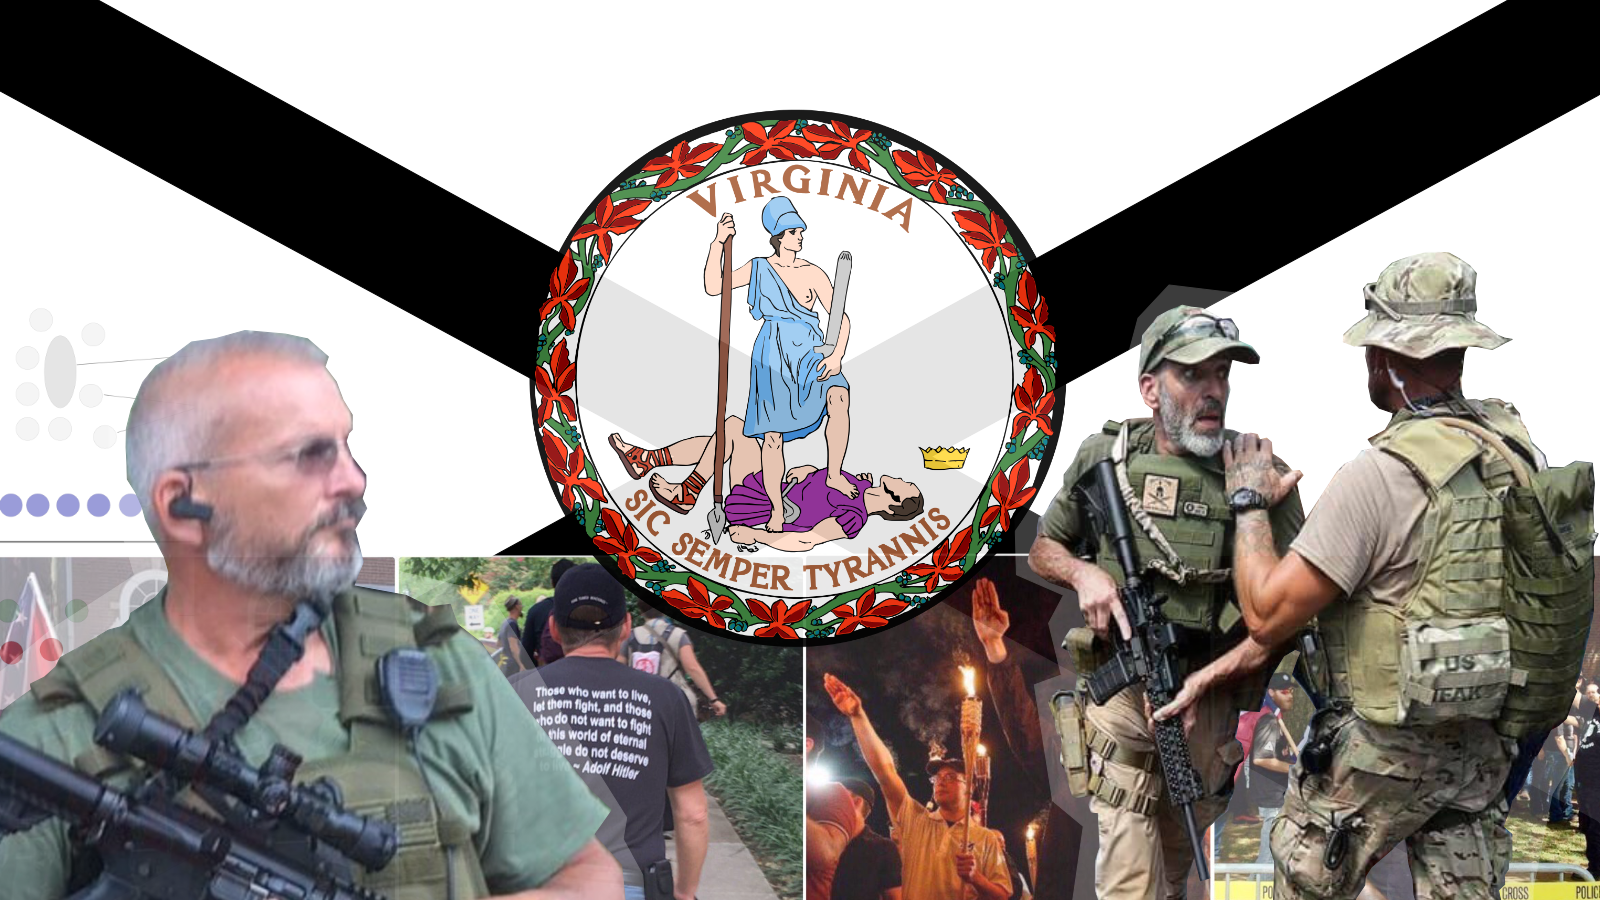 Militias and Militant Groups at #UniteTheRight: Buffer Zones and ...